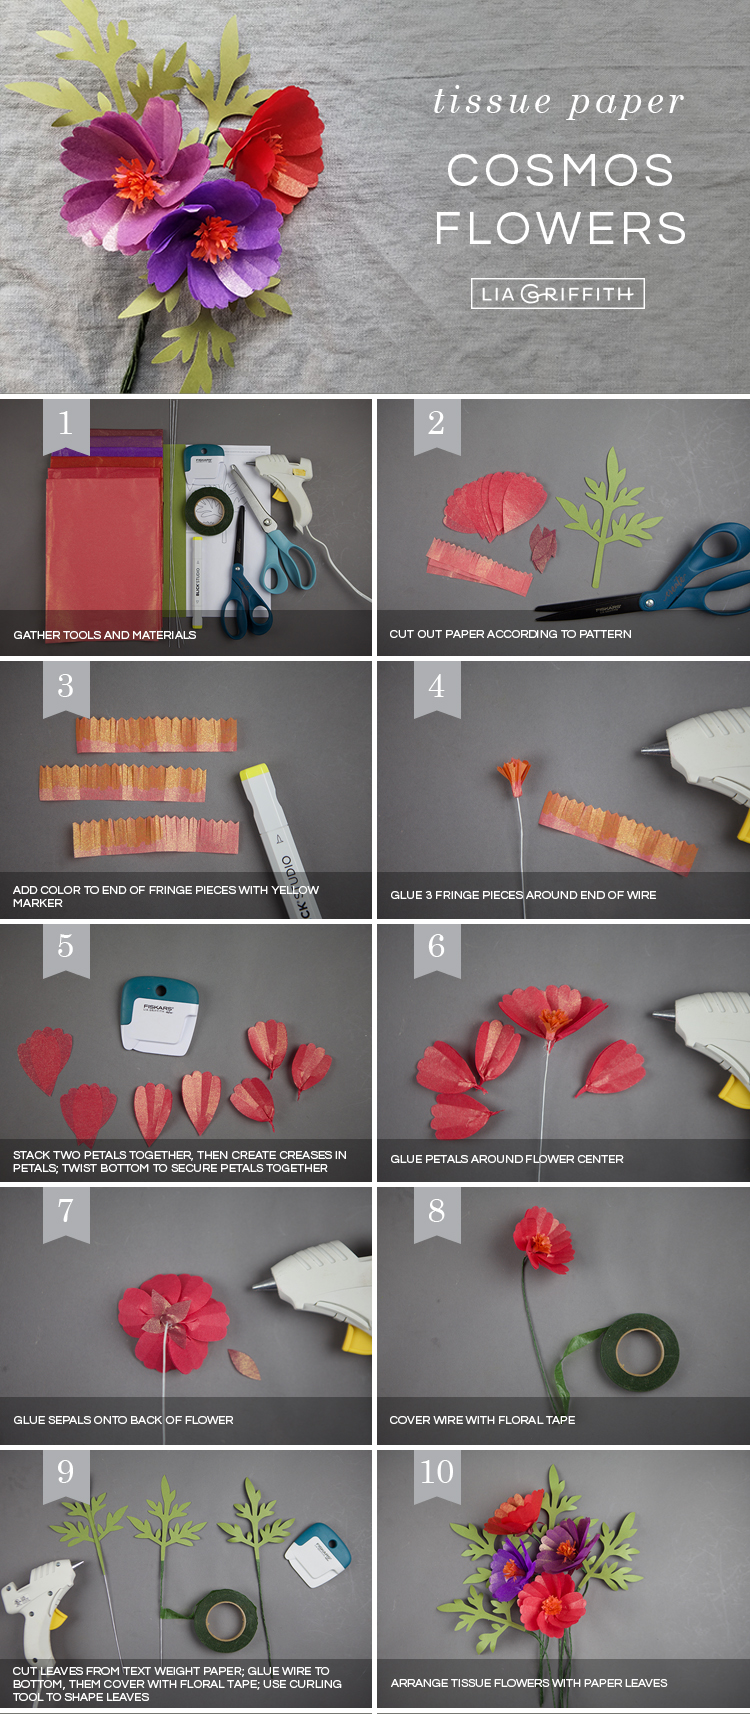 Photo tutorial for tissue paper cosmos flowers